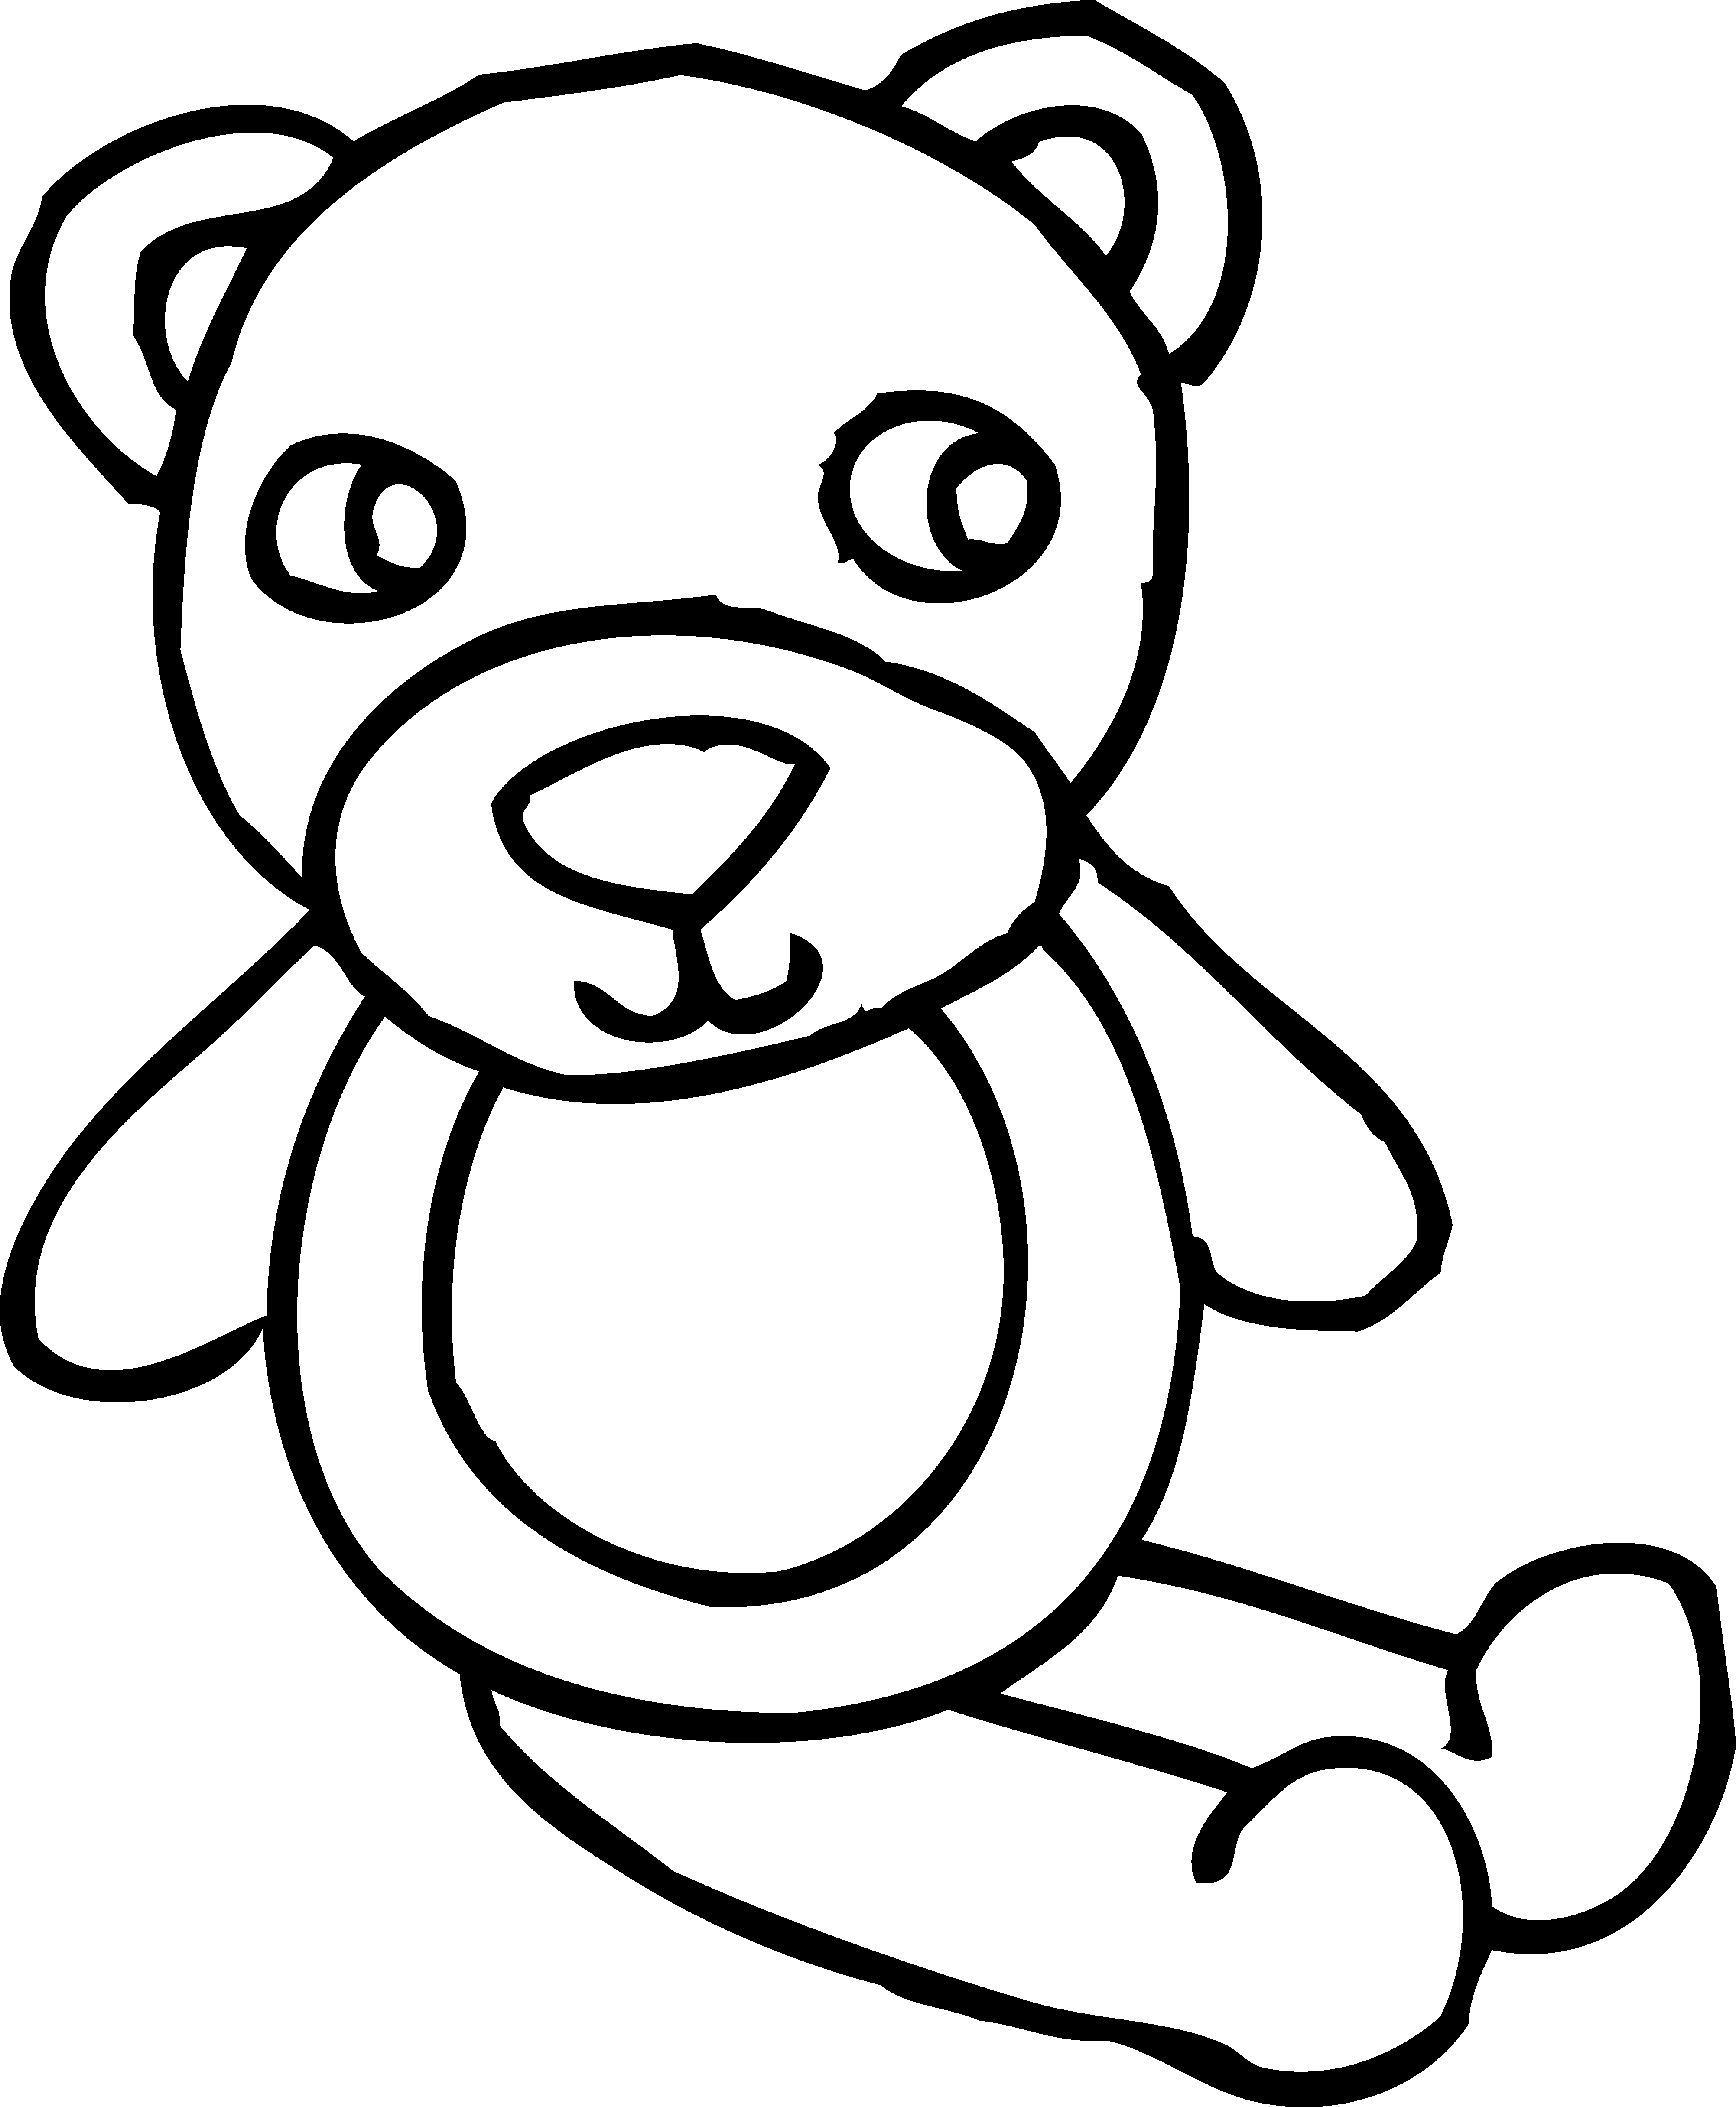 Teddy Bear Outline | Free Download Clip Art | Free Clip ...